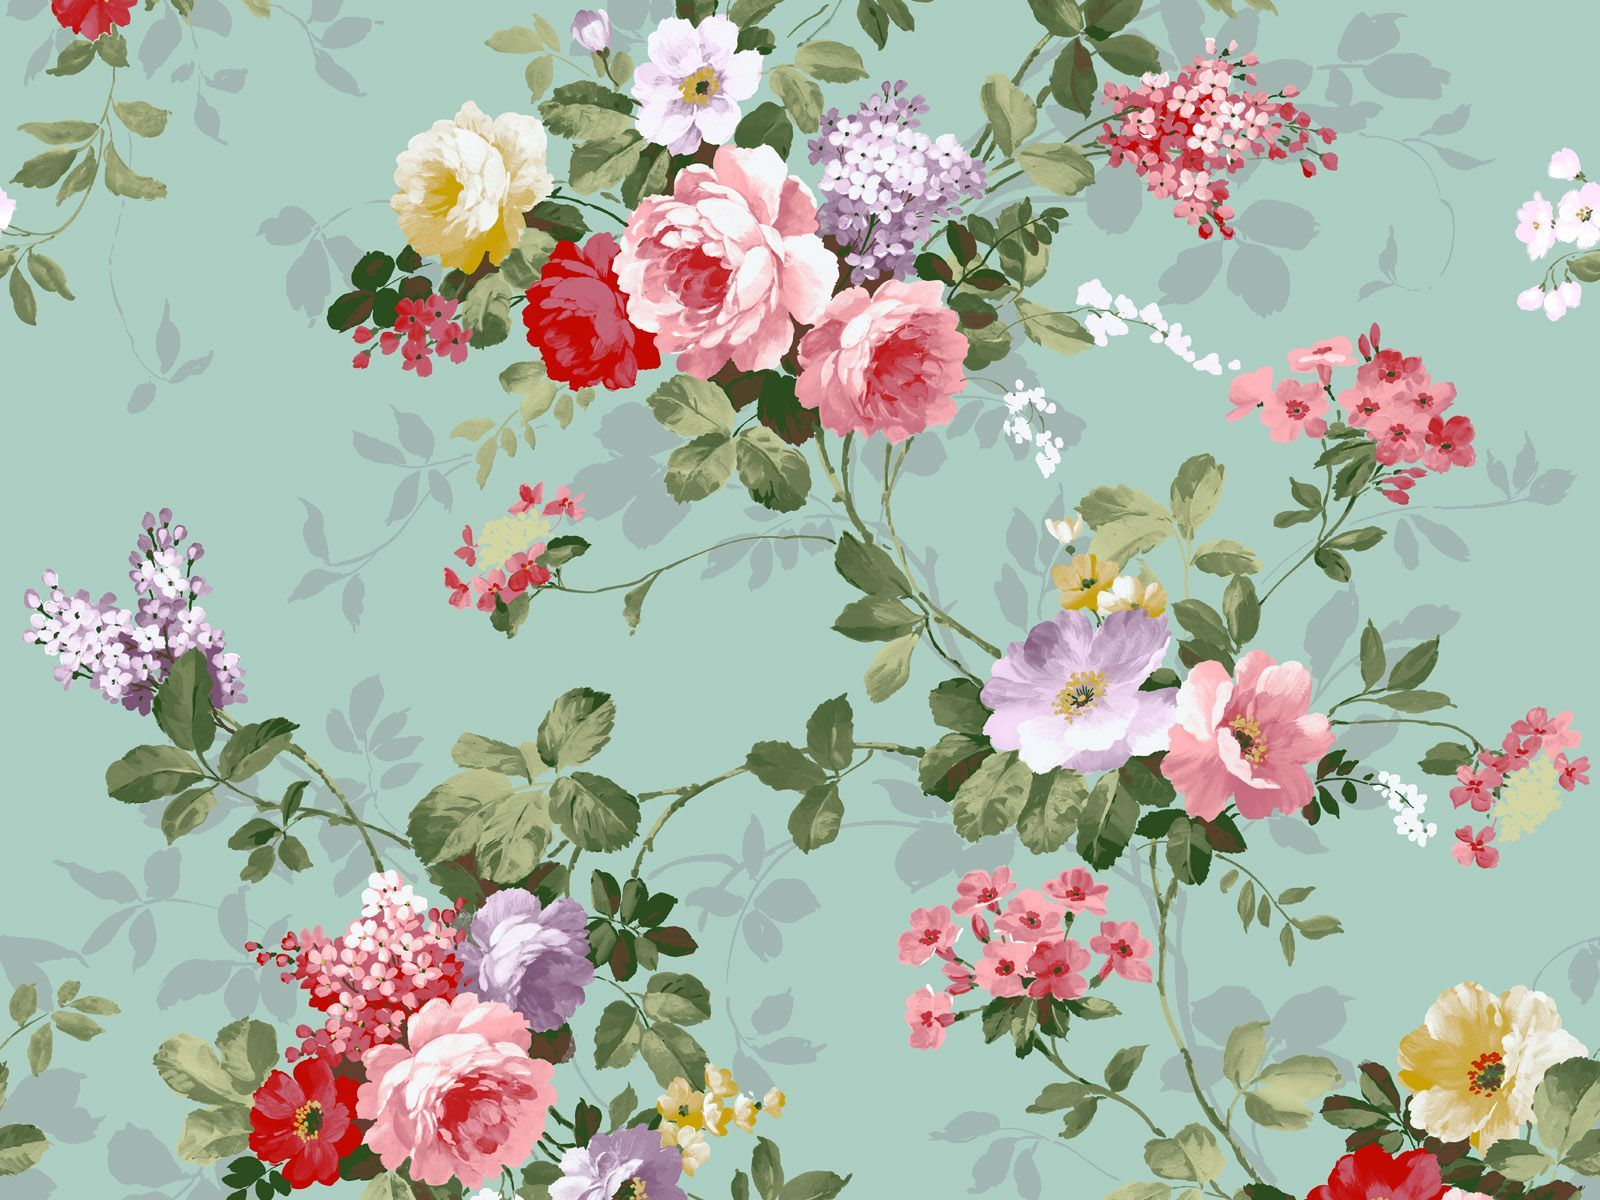 Convite de Casamento DIY | Wallpaper, Patterns and Floral